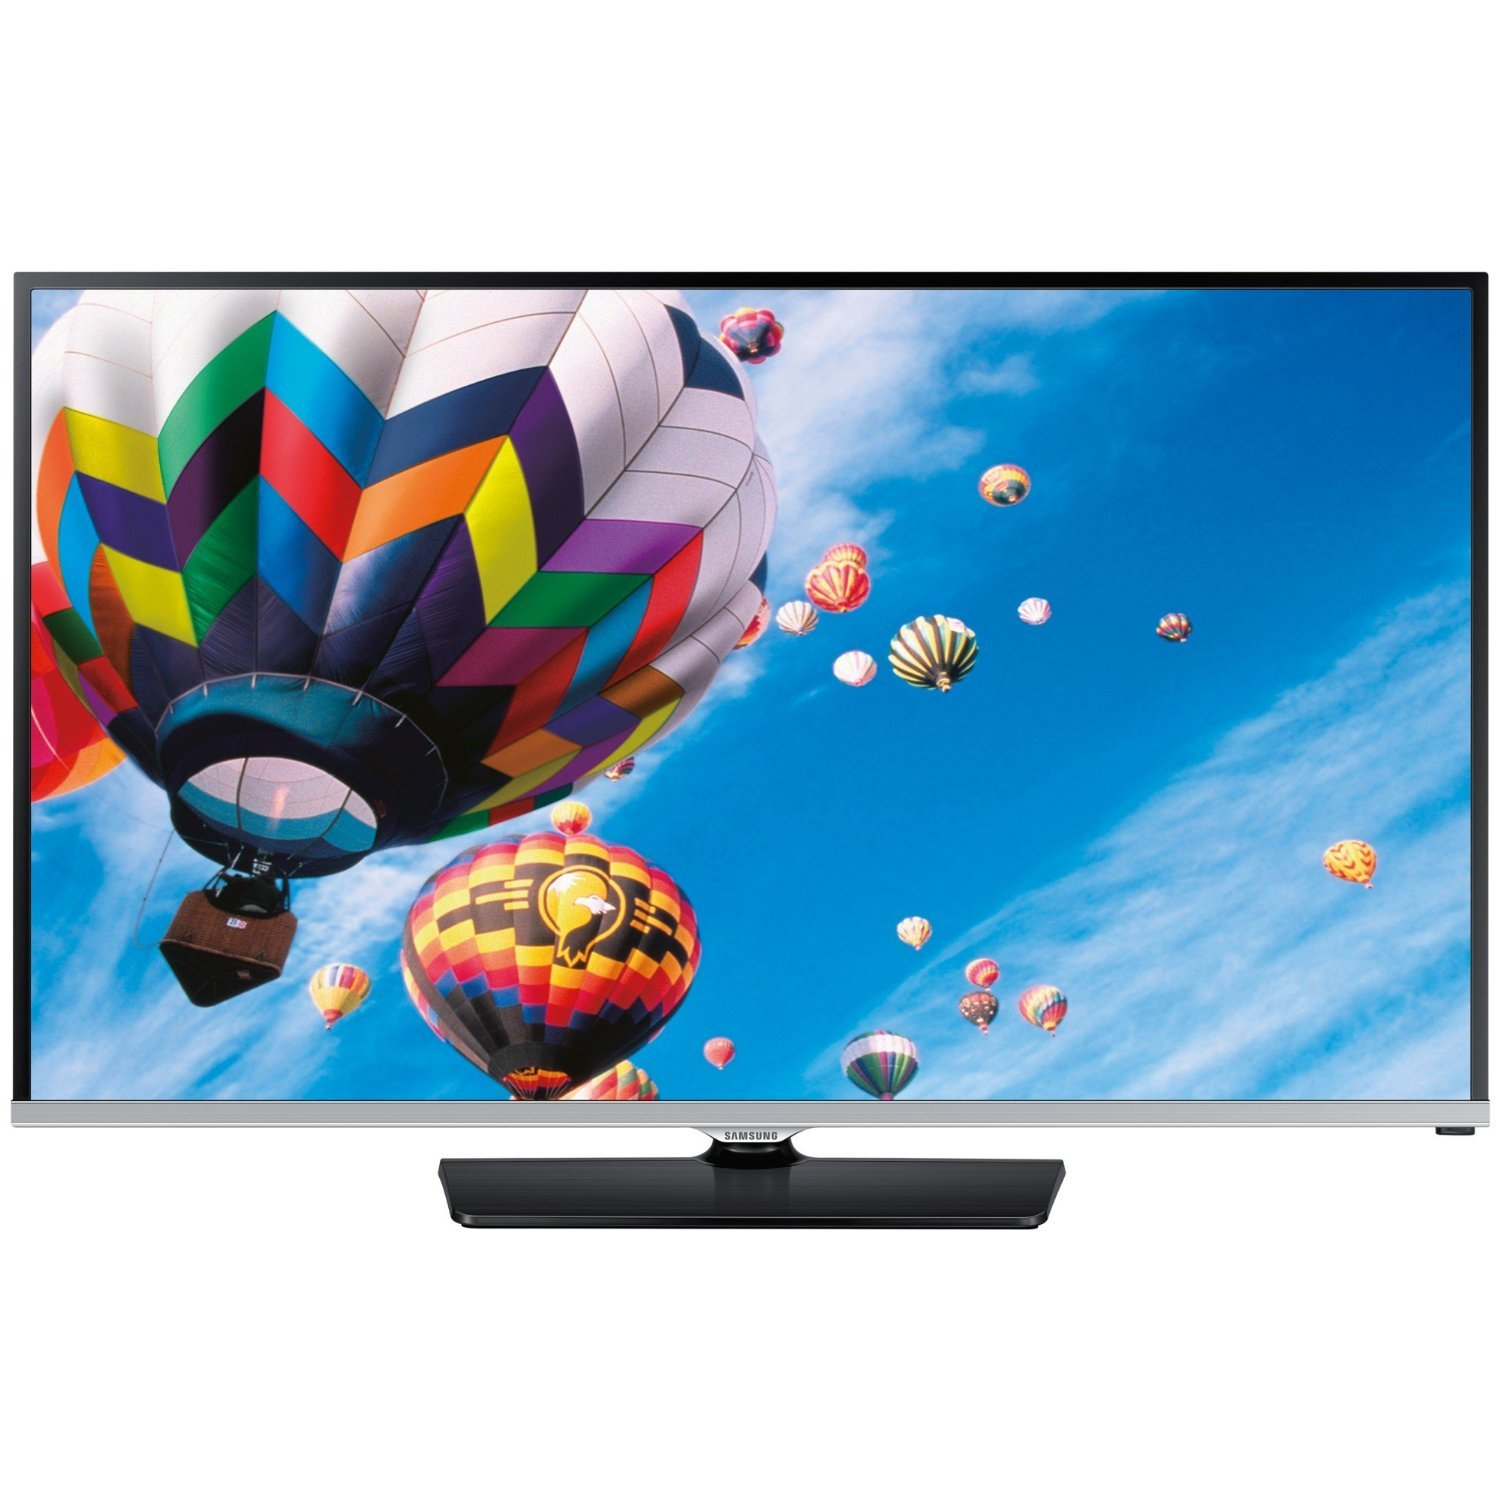 samsung rm40d 40 inches full hd smart led tv at rs. Black Bedroom Furniture Sets. Home Design Ideas